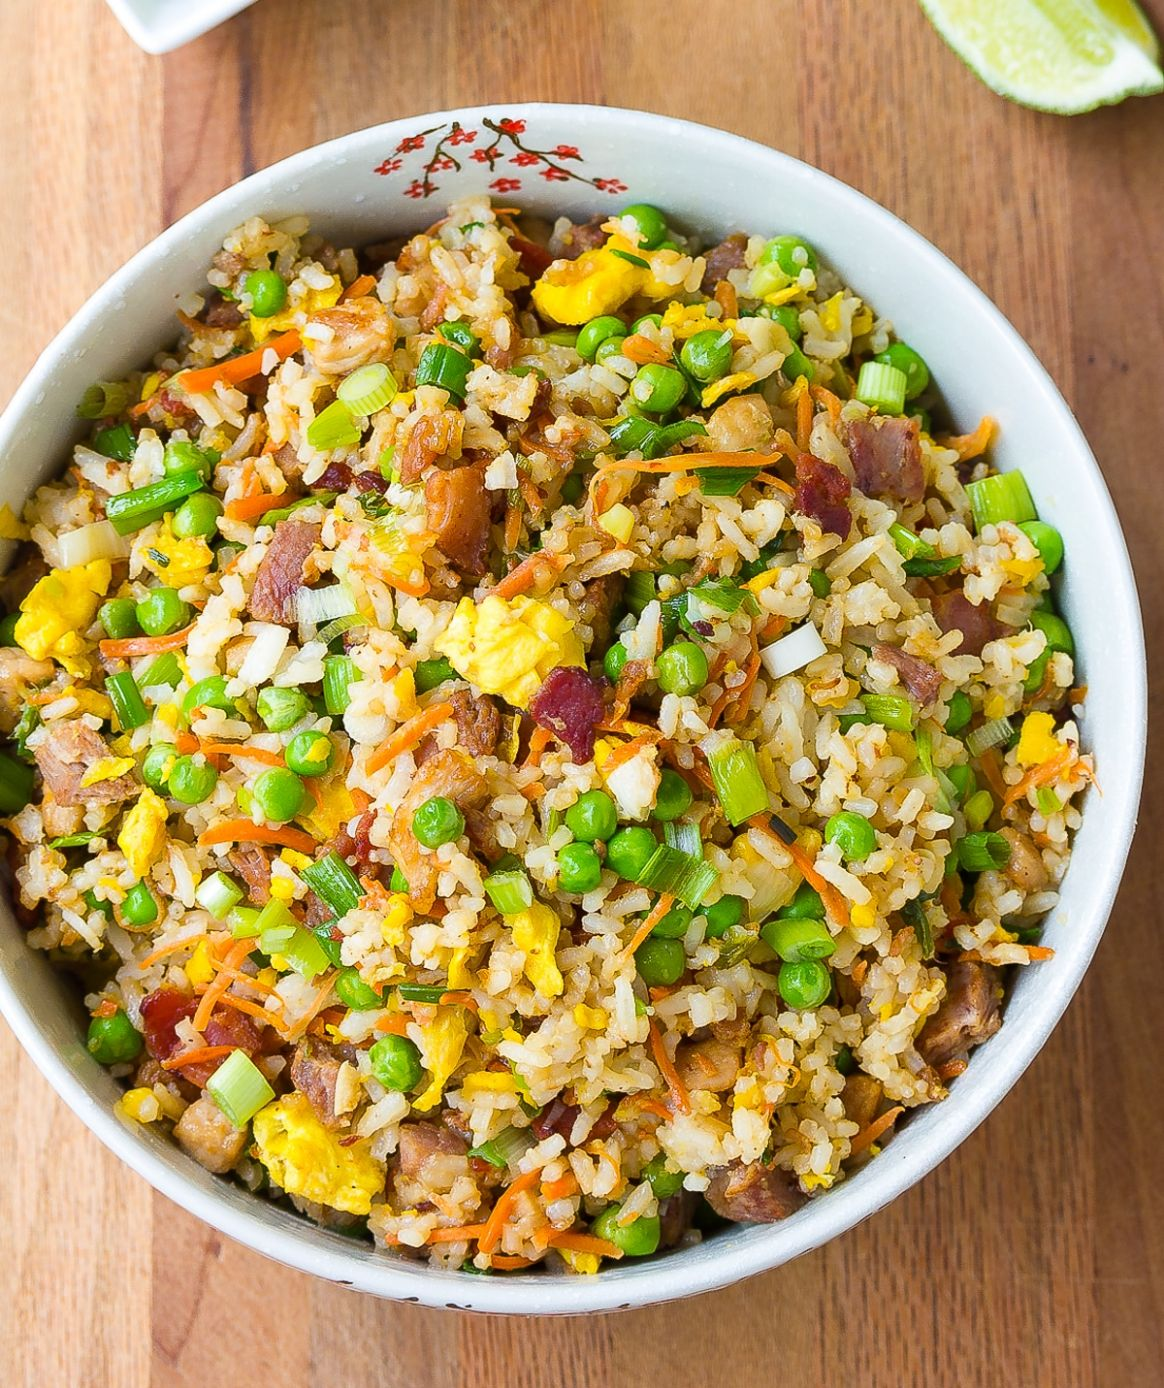 Triple Pork Fried Rice Recipe - Recipes Pork And Rice